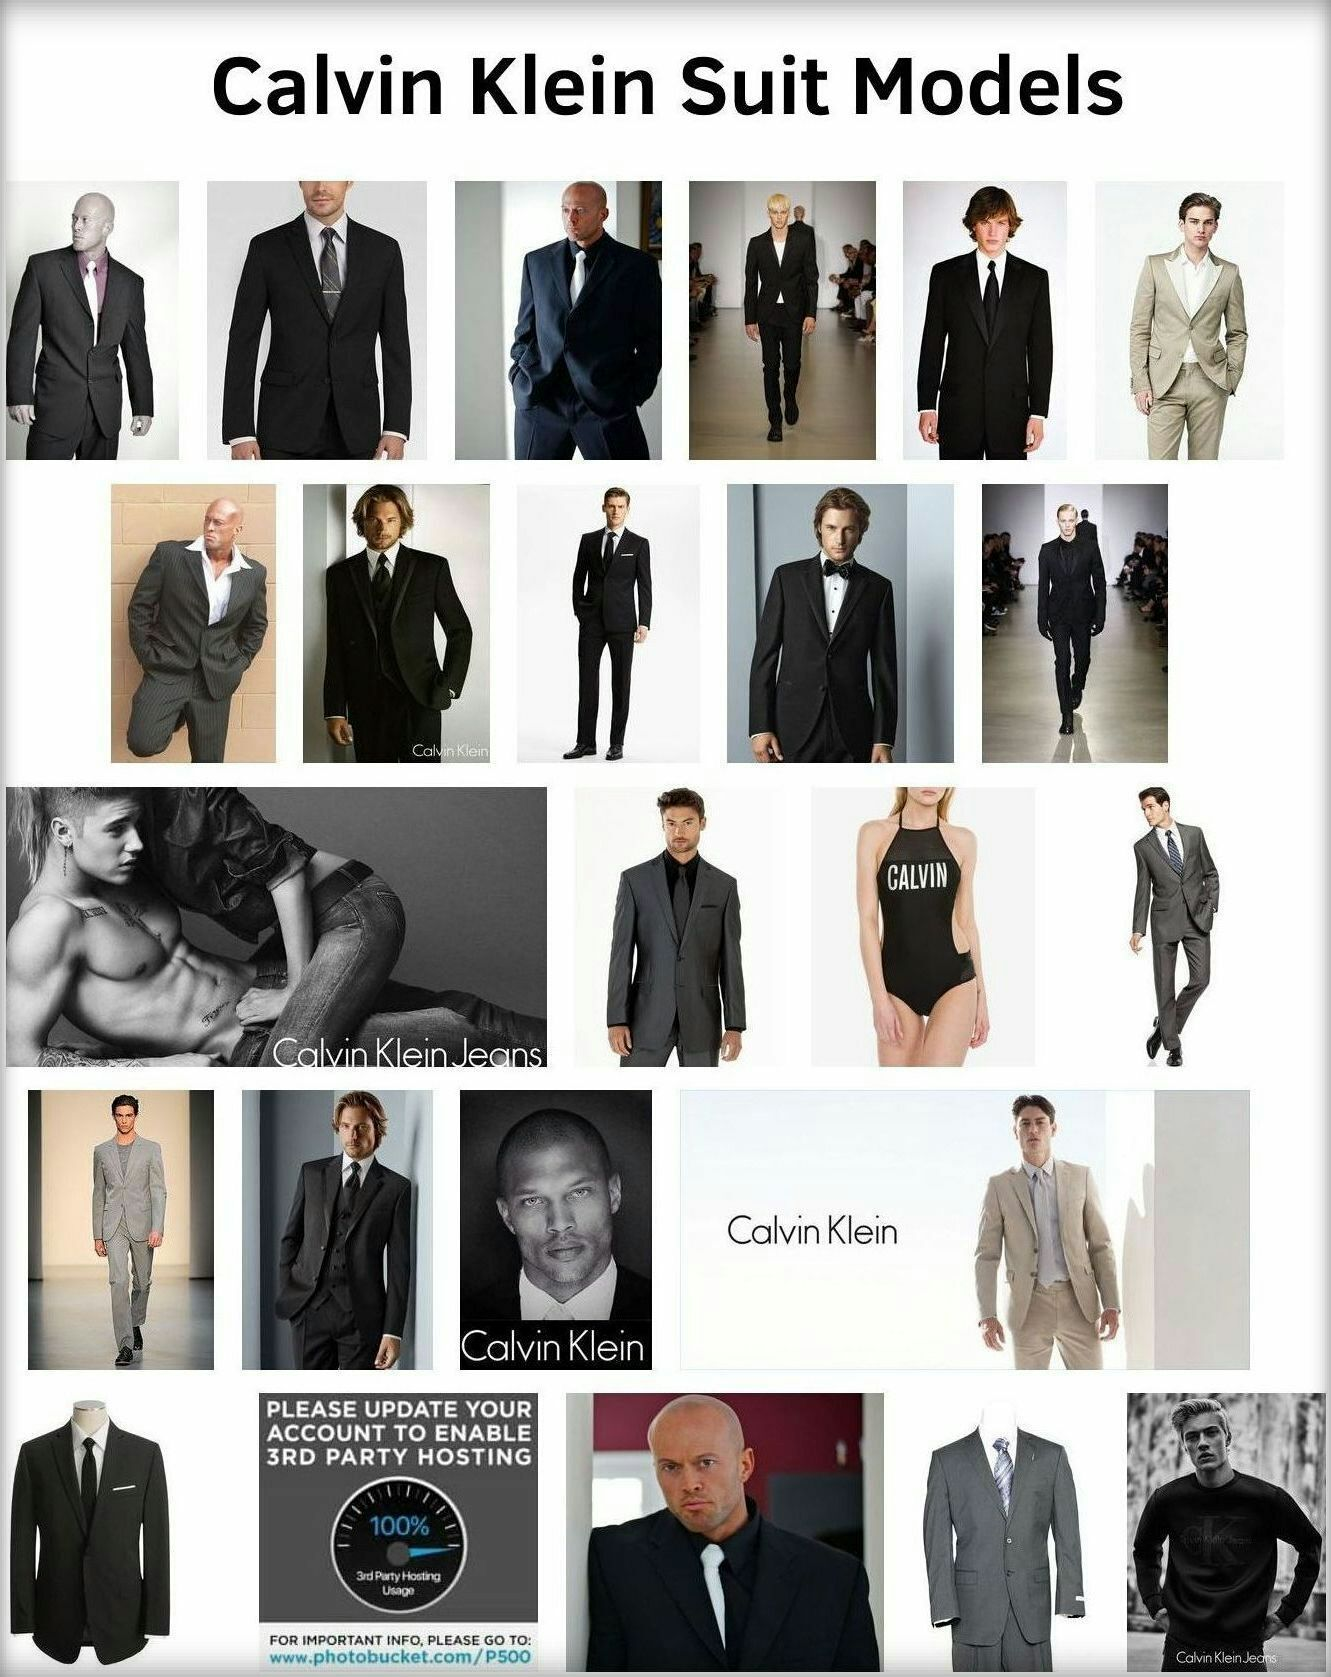 Actor John Quinlan Celebrities @ Calvin Klein Suit Model Gallery #JohnQuinlan